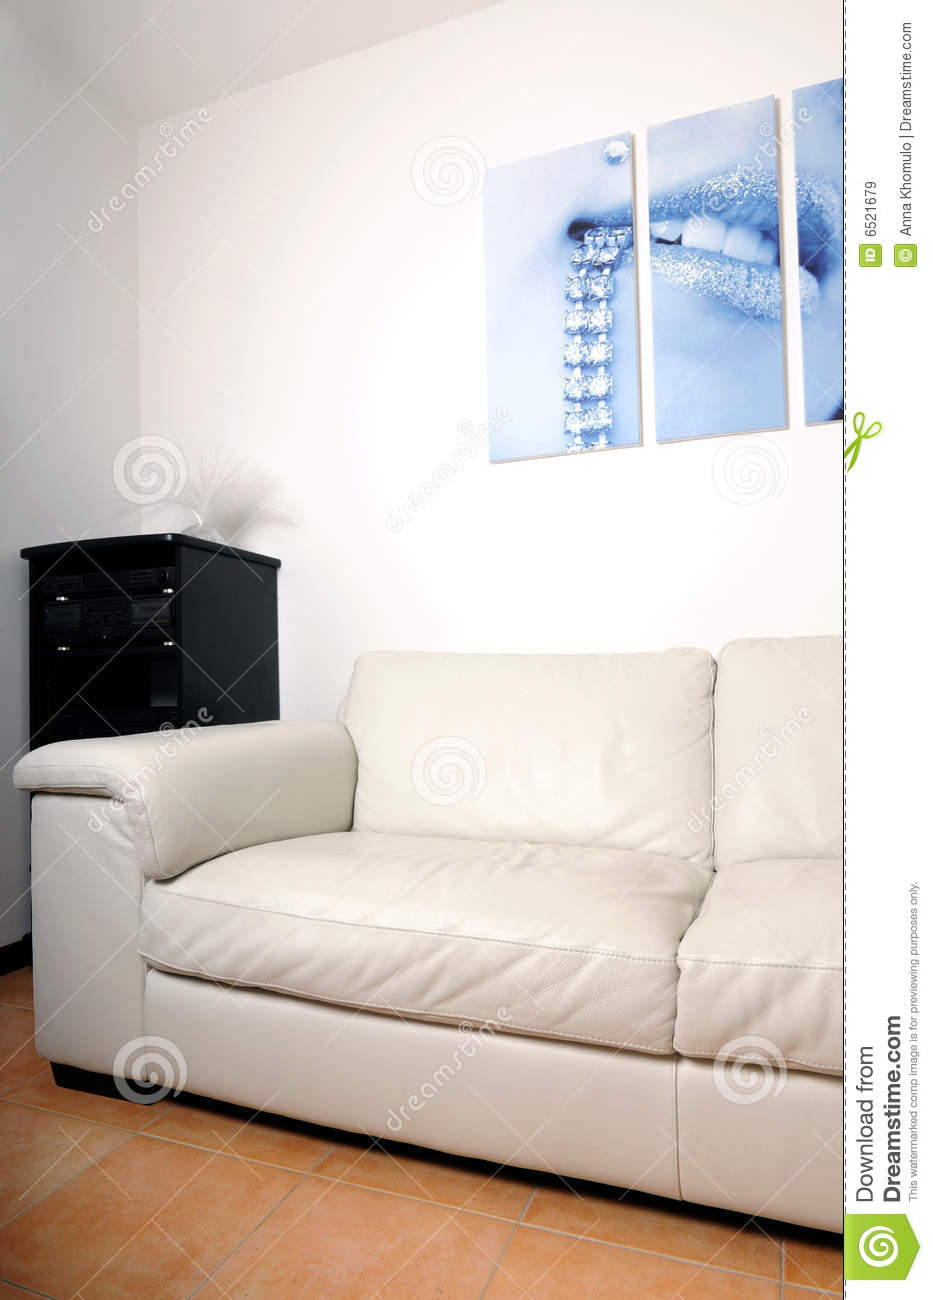 Living room royalty free stock images image 6521679 - Living room image ...